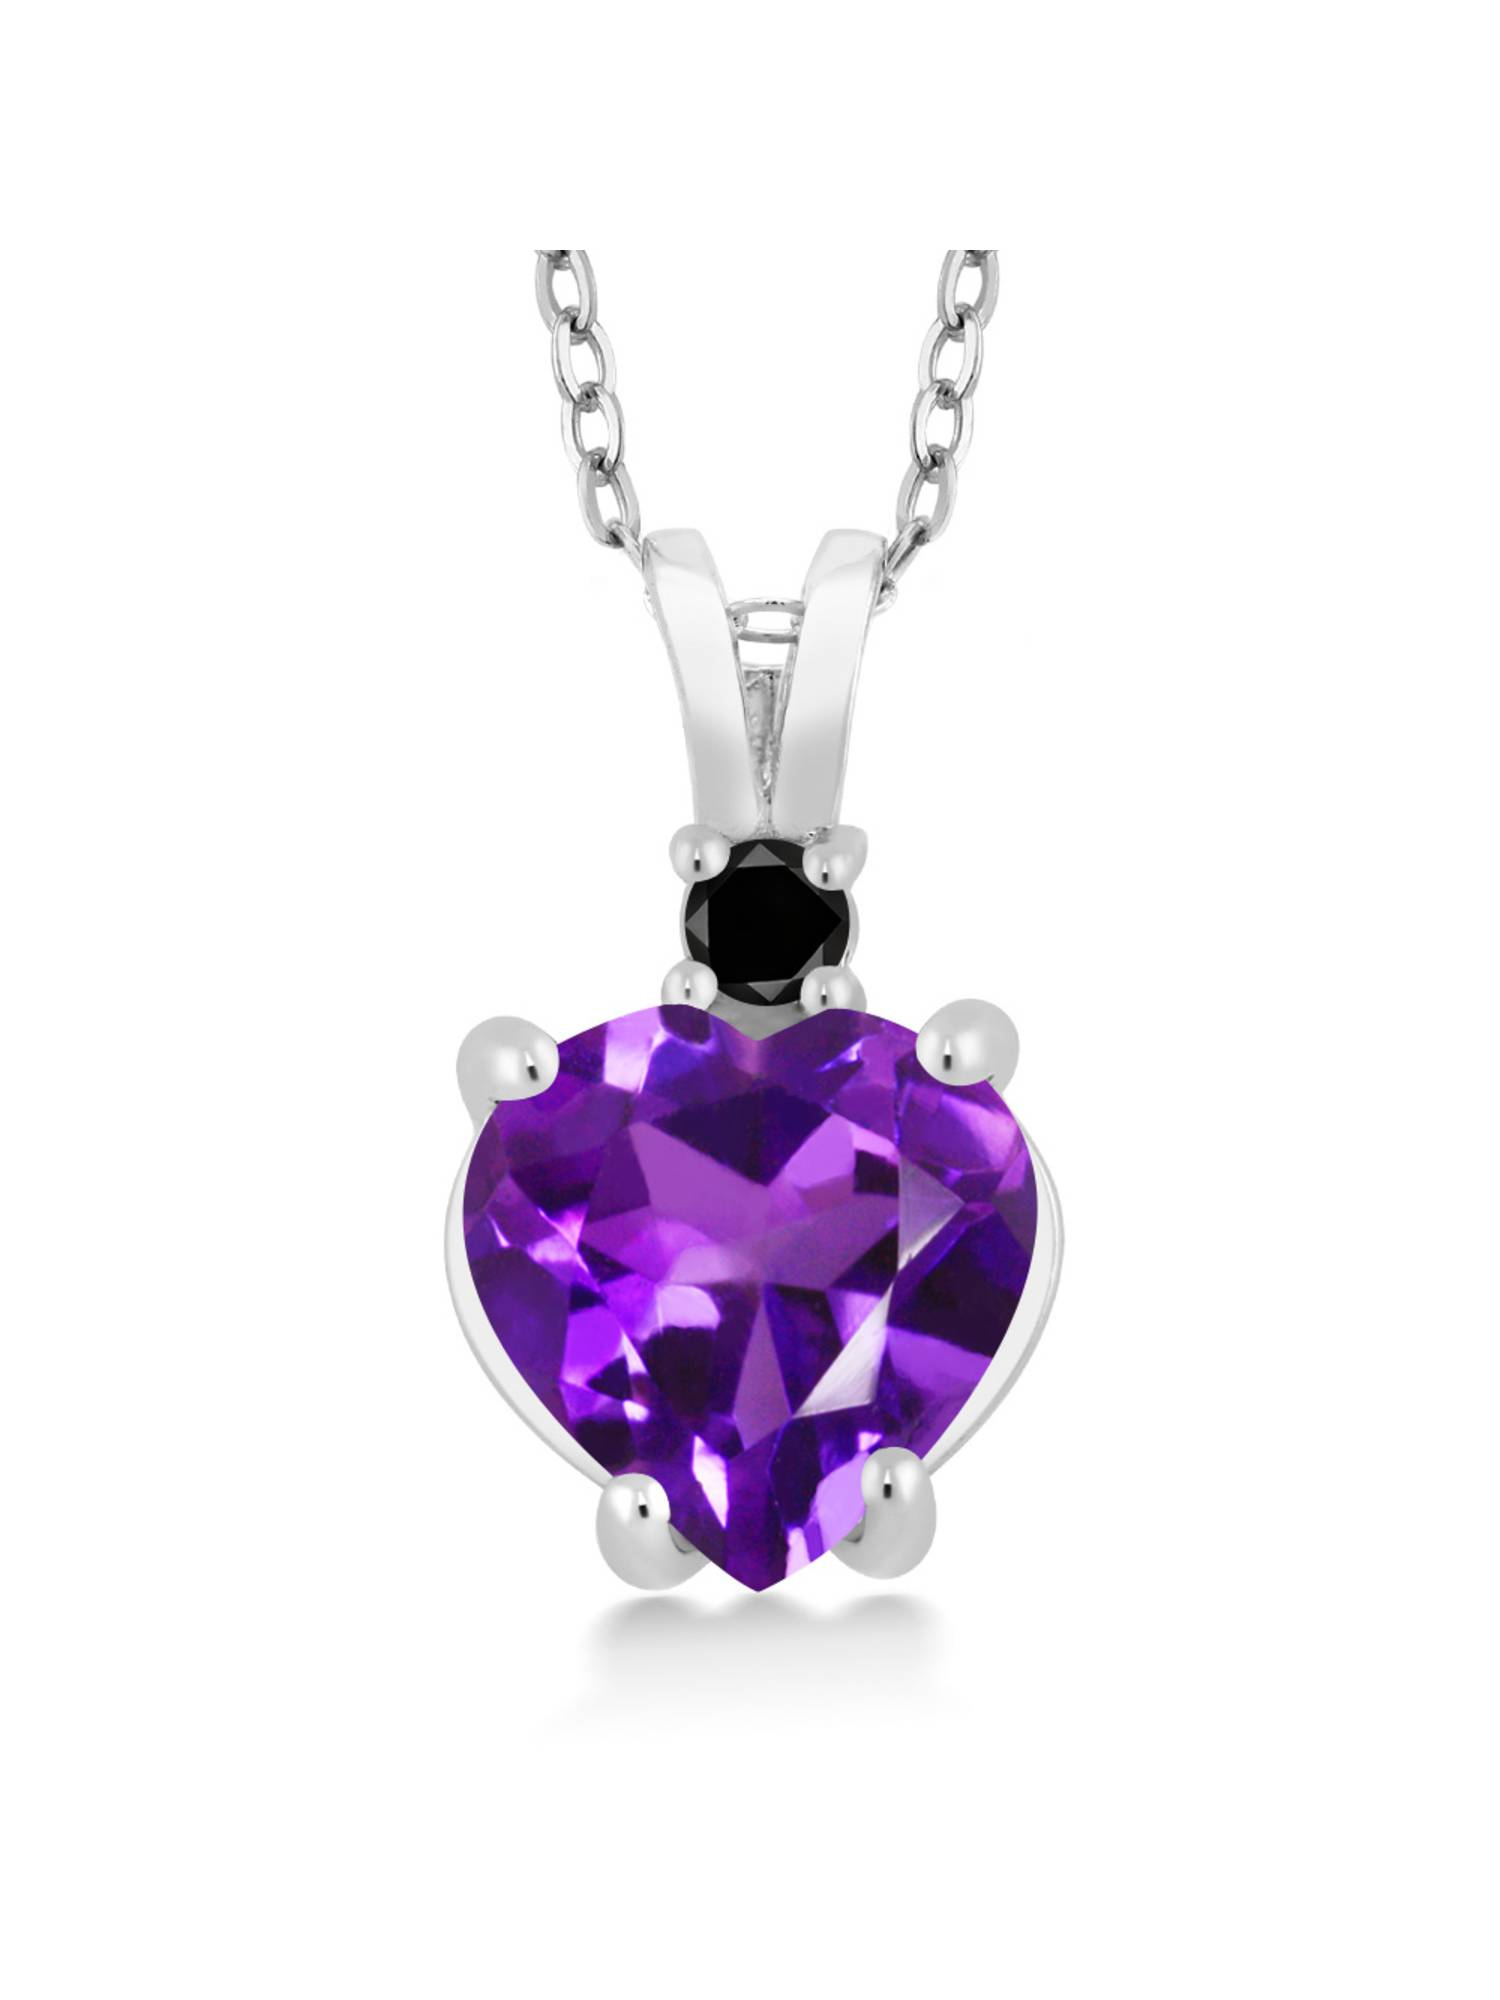 14K White Gold Heart Pendant set with 1.67 Ct Purple Amethyst & Black Diamond by